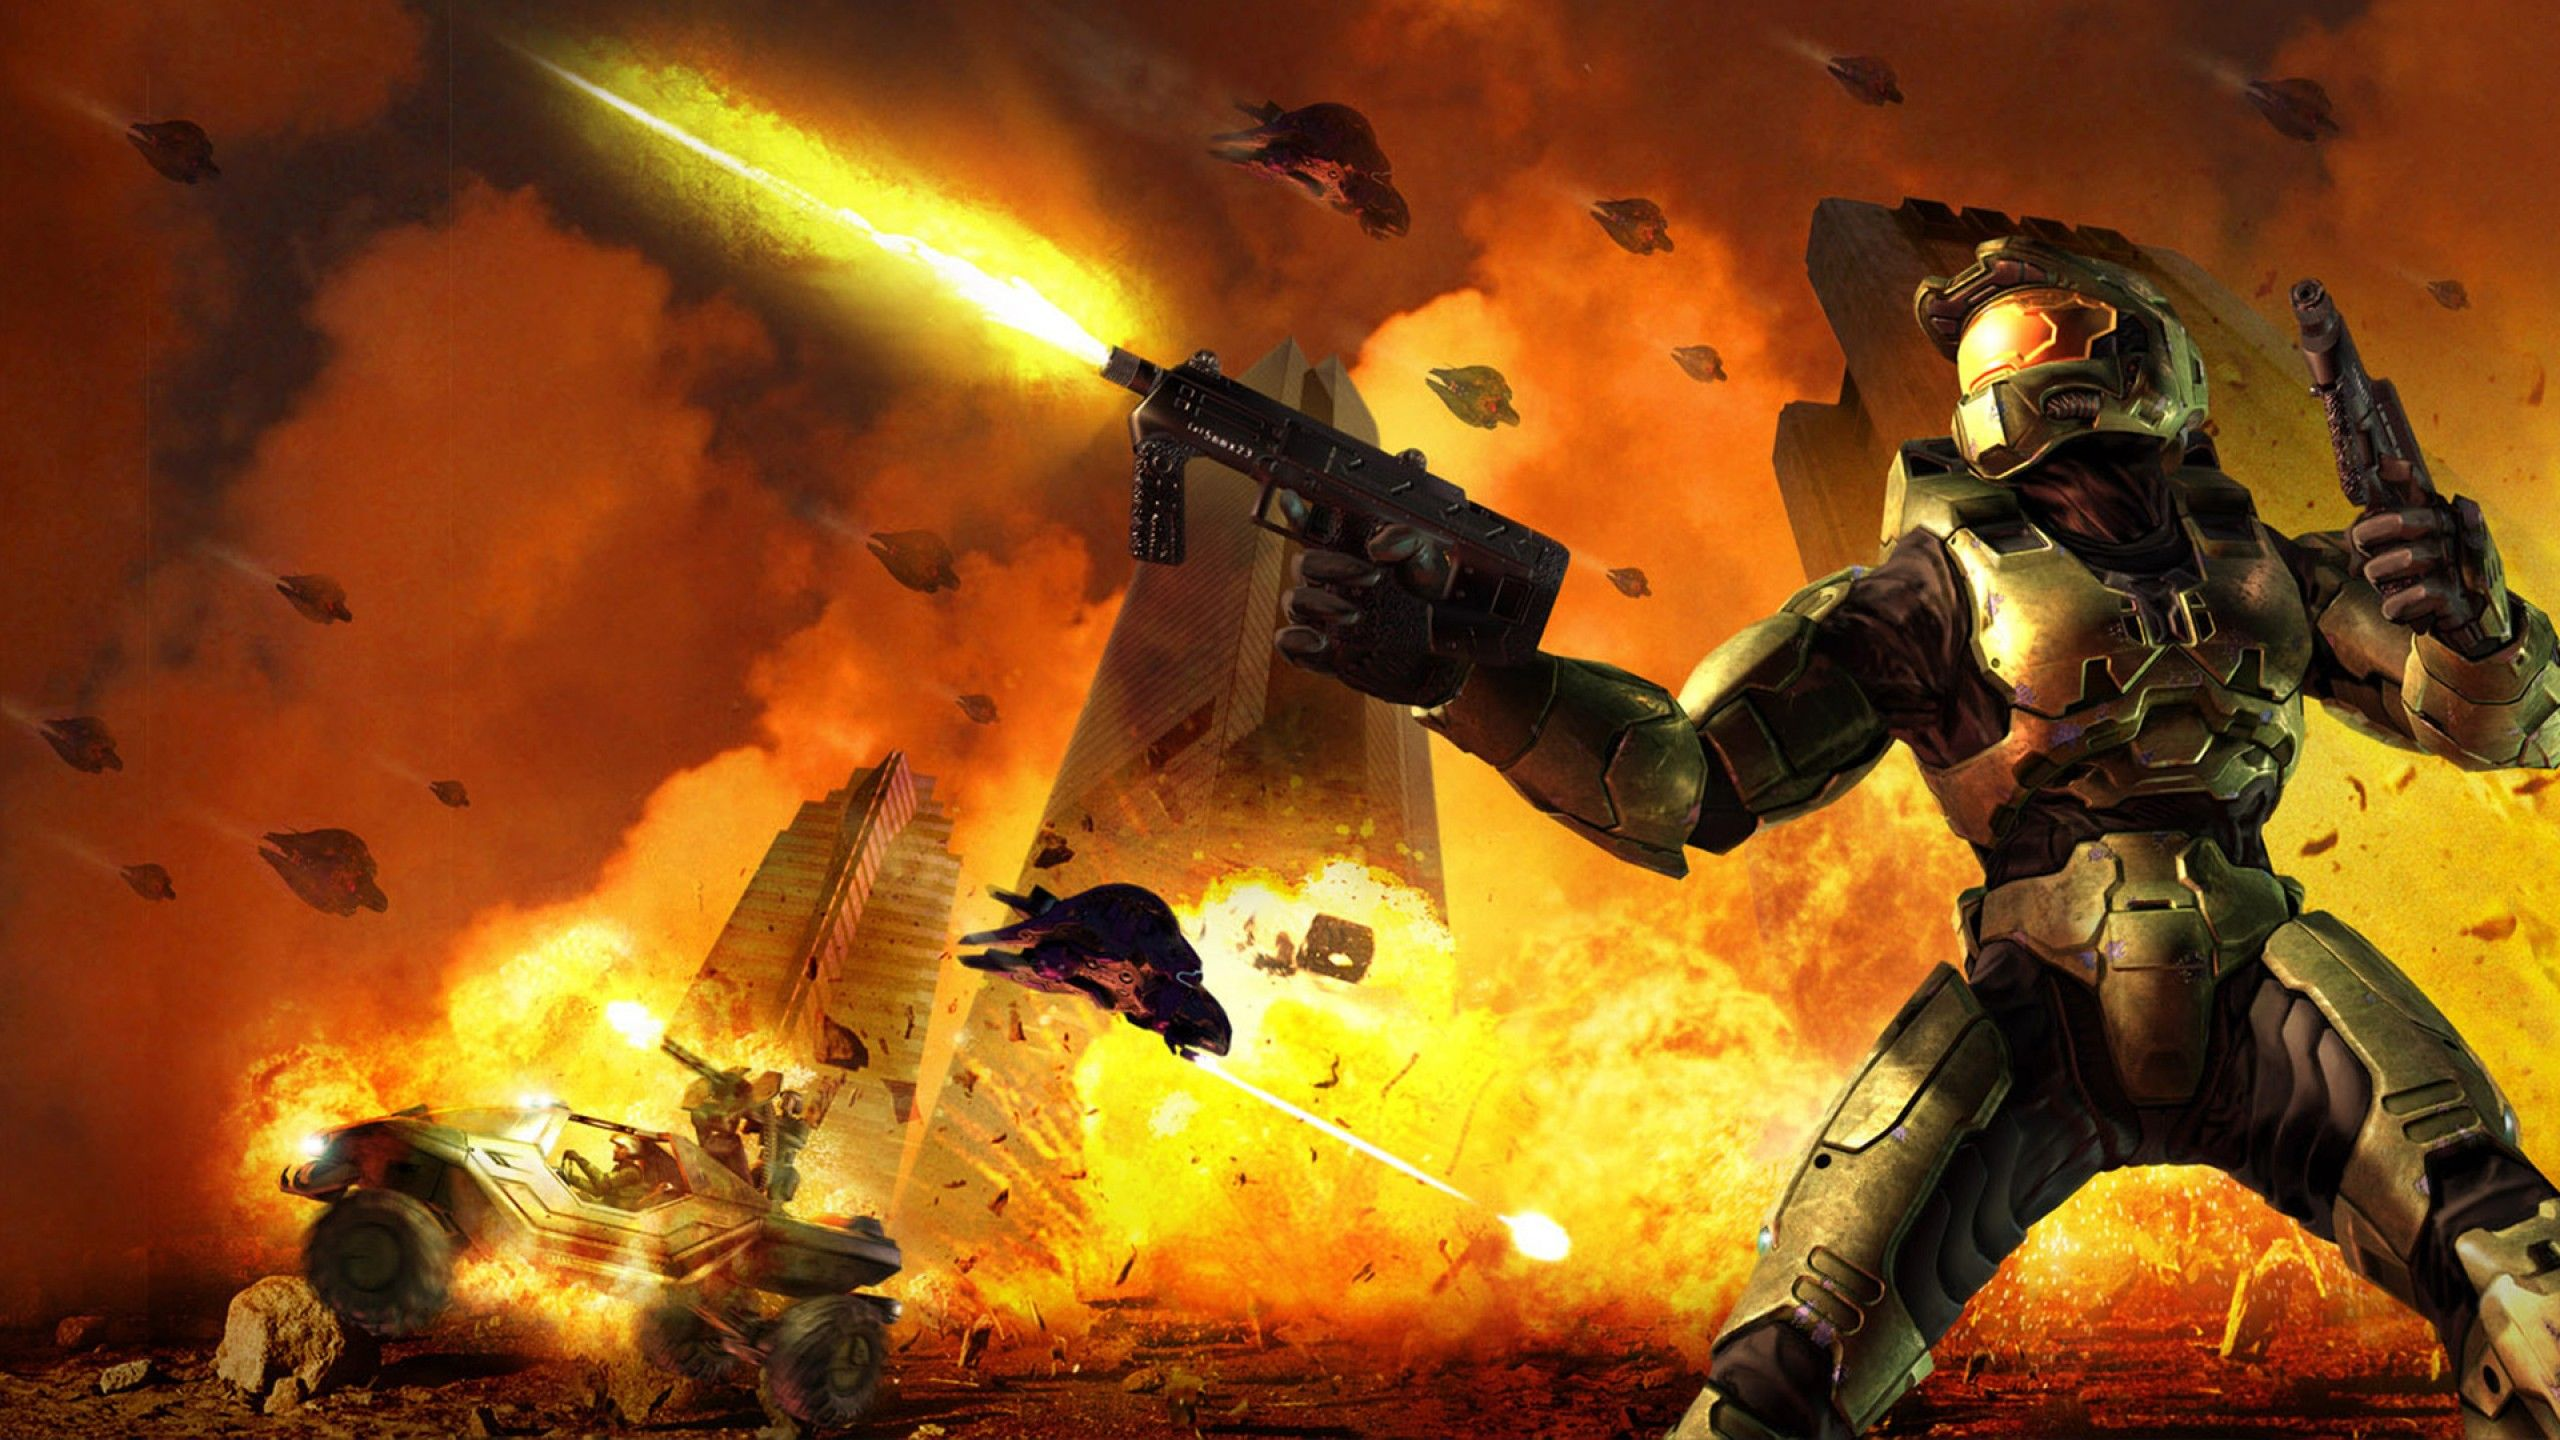 Halo 2 Wallpapers - Top Free Halo 2 Backgrounds - WallpaperAccess